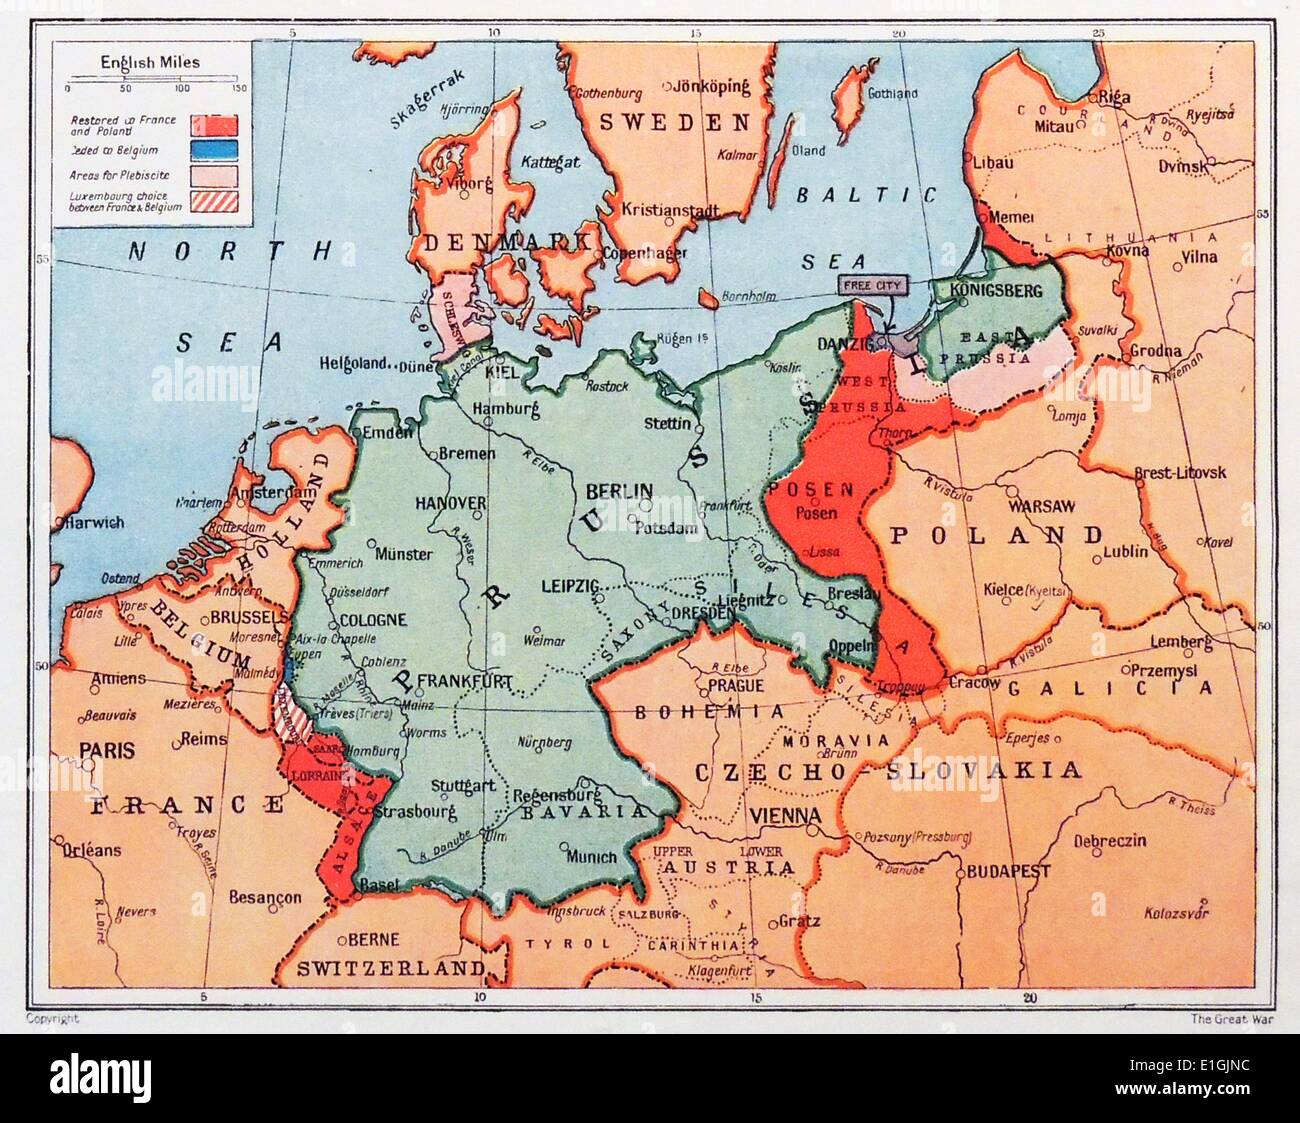 Germany Map Stock Photos Germany Map Stock Images Alamy